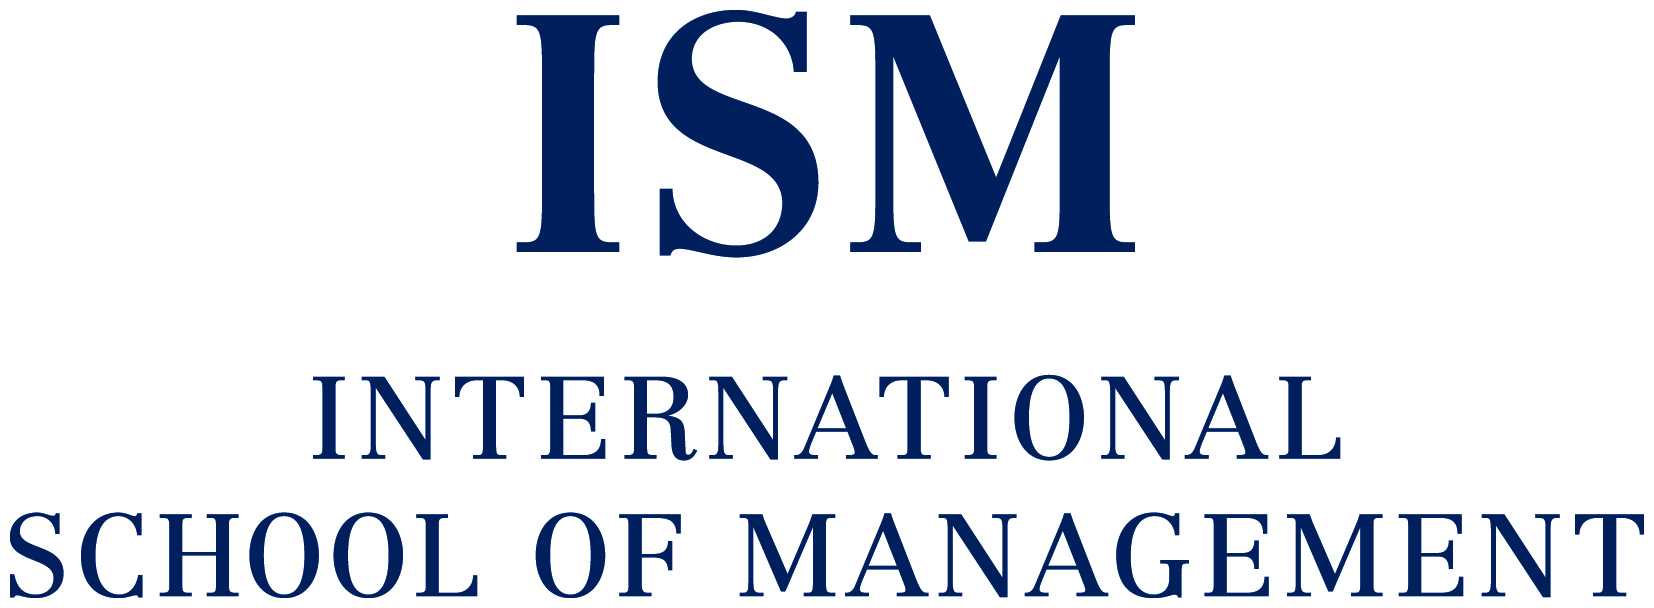 International School of Management GmbH